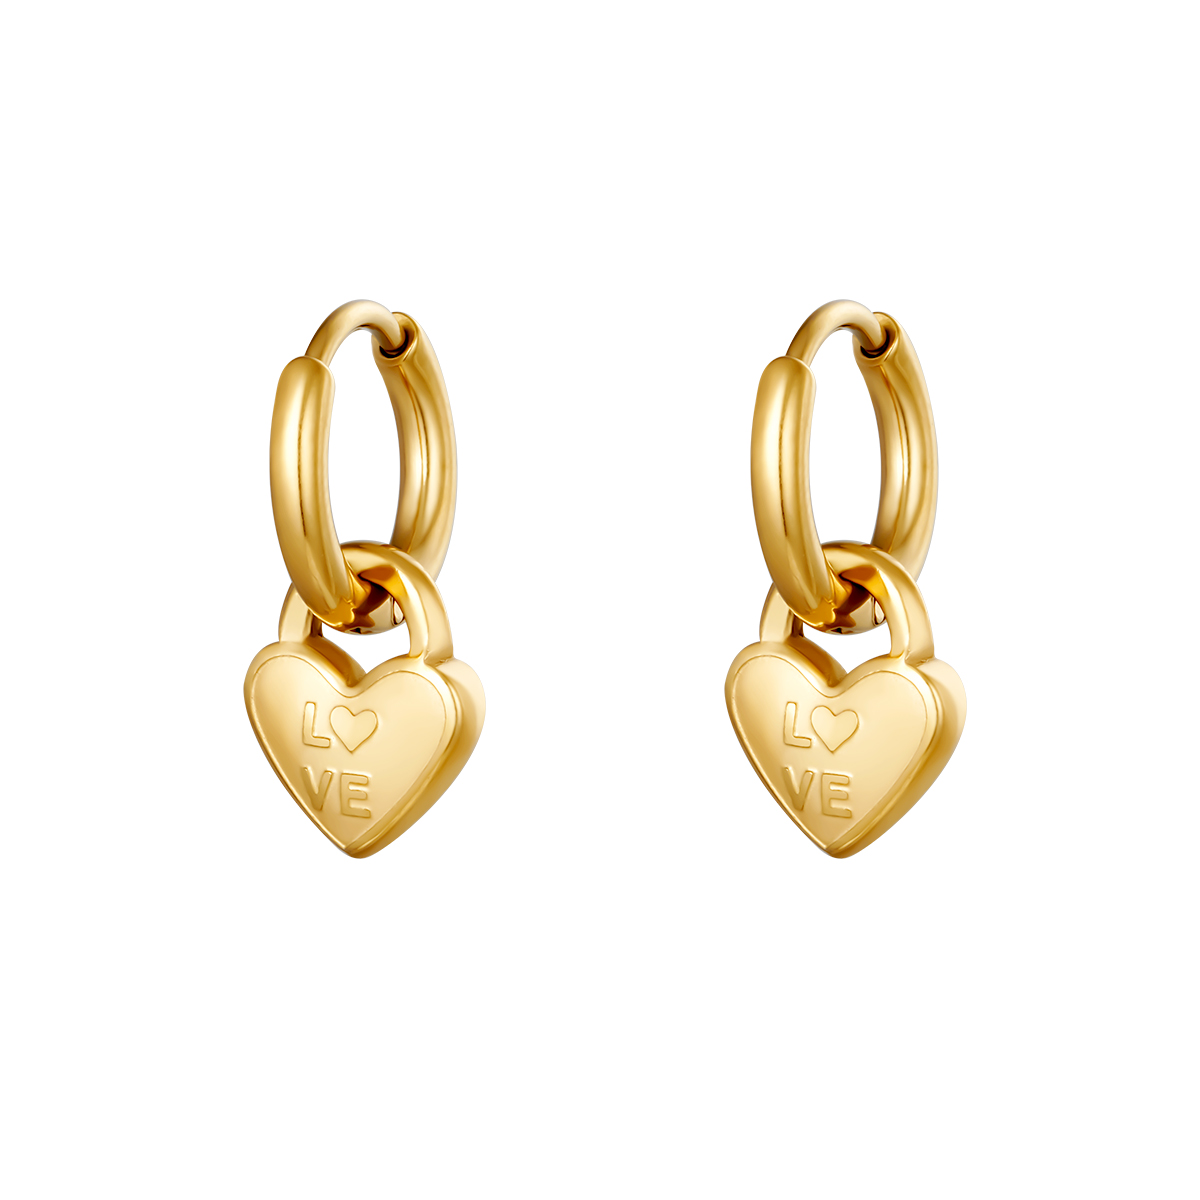 Boucles d'oreilles Locked In Love